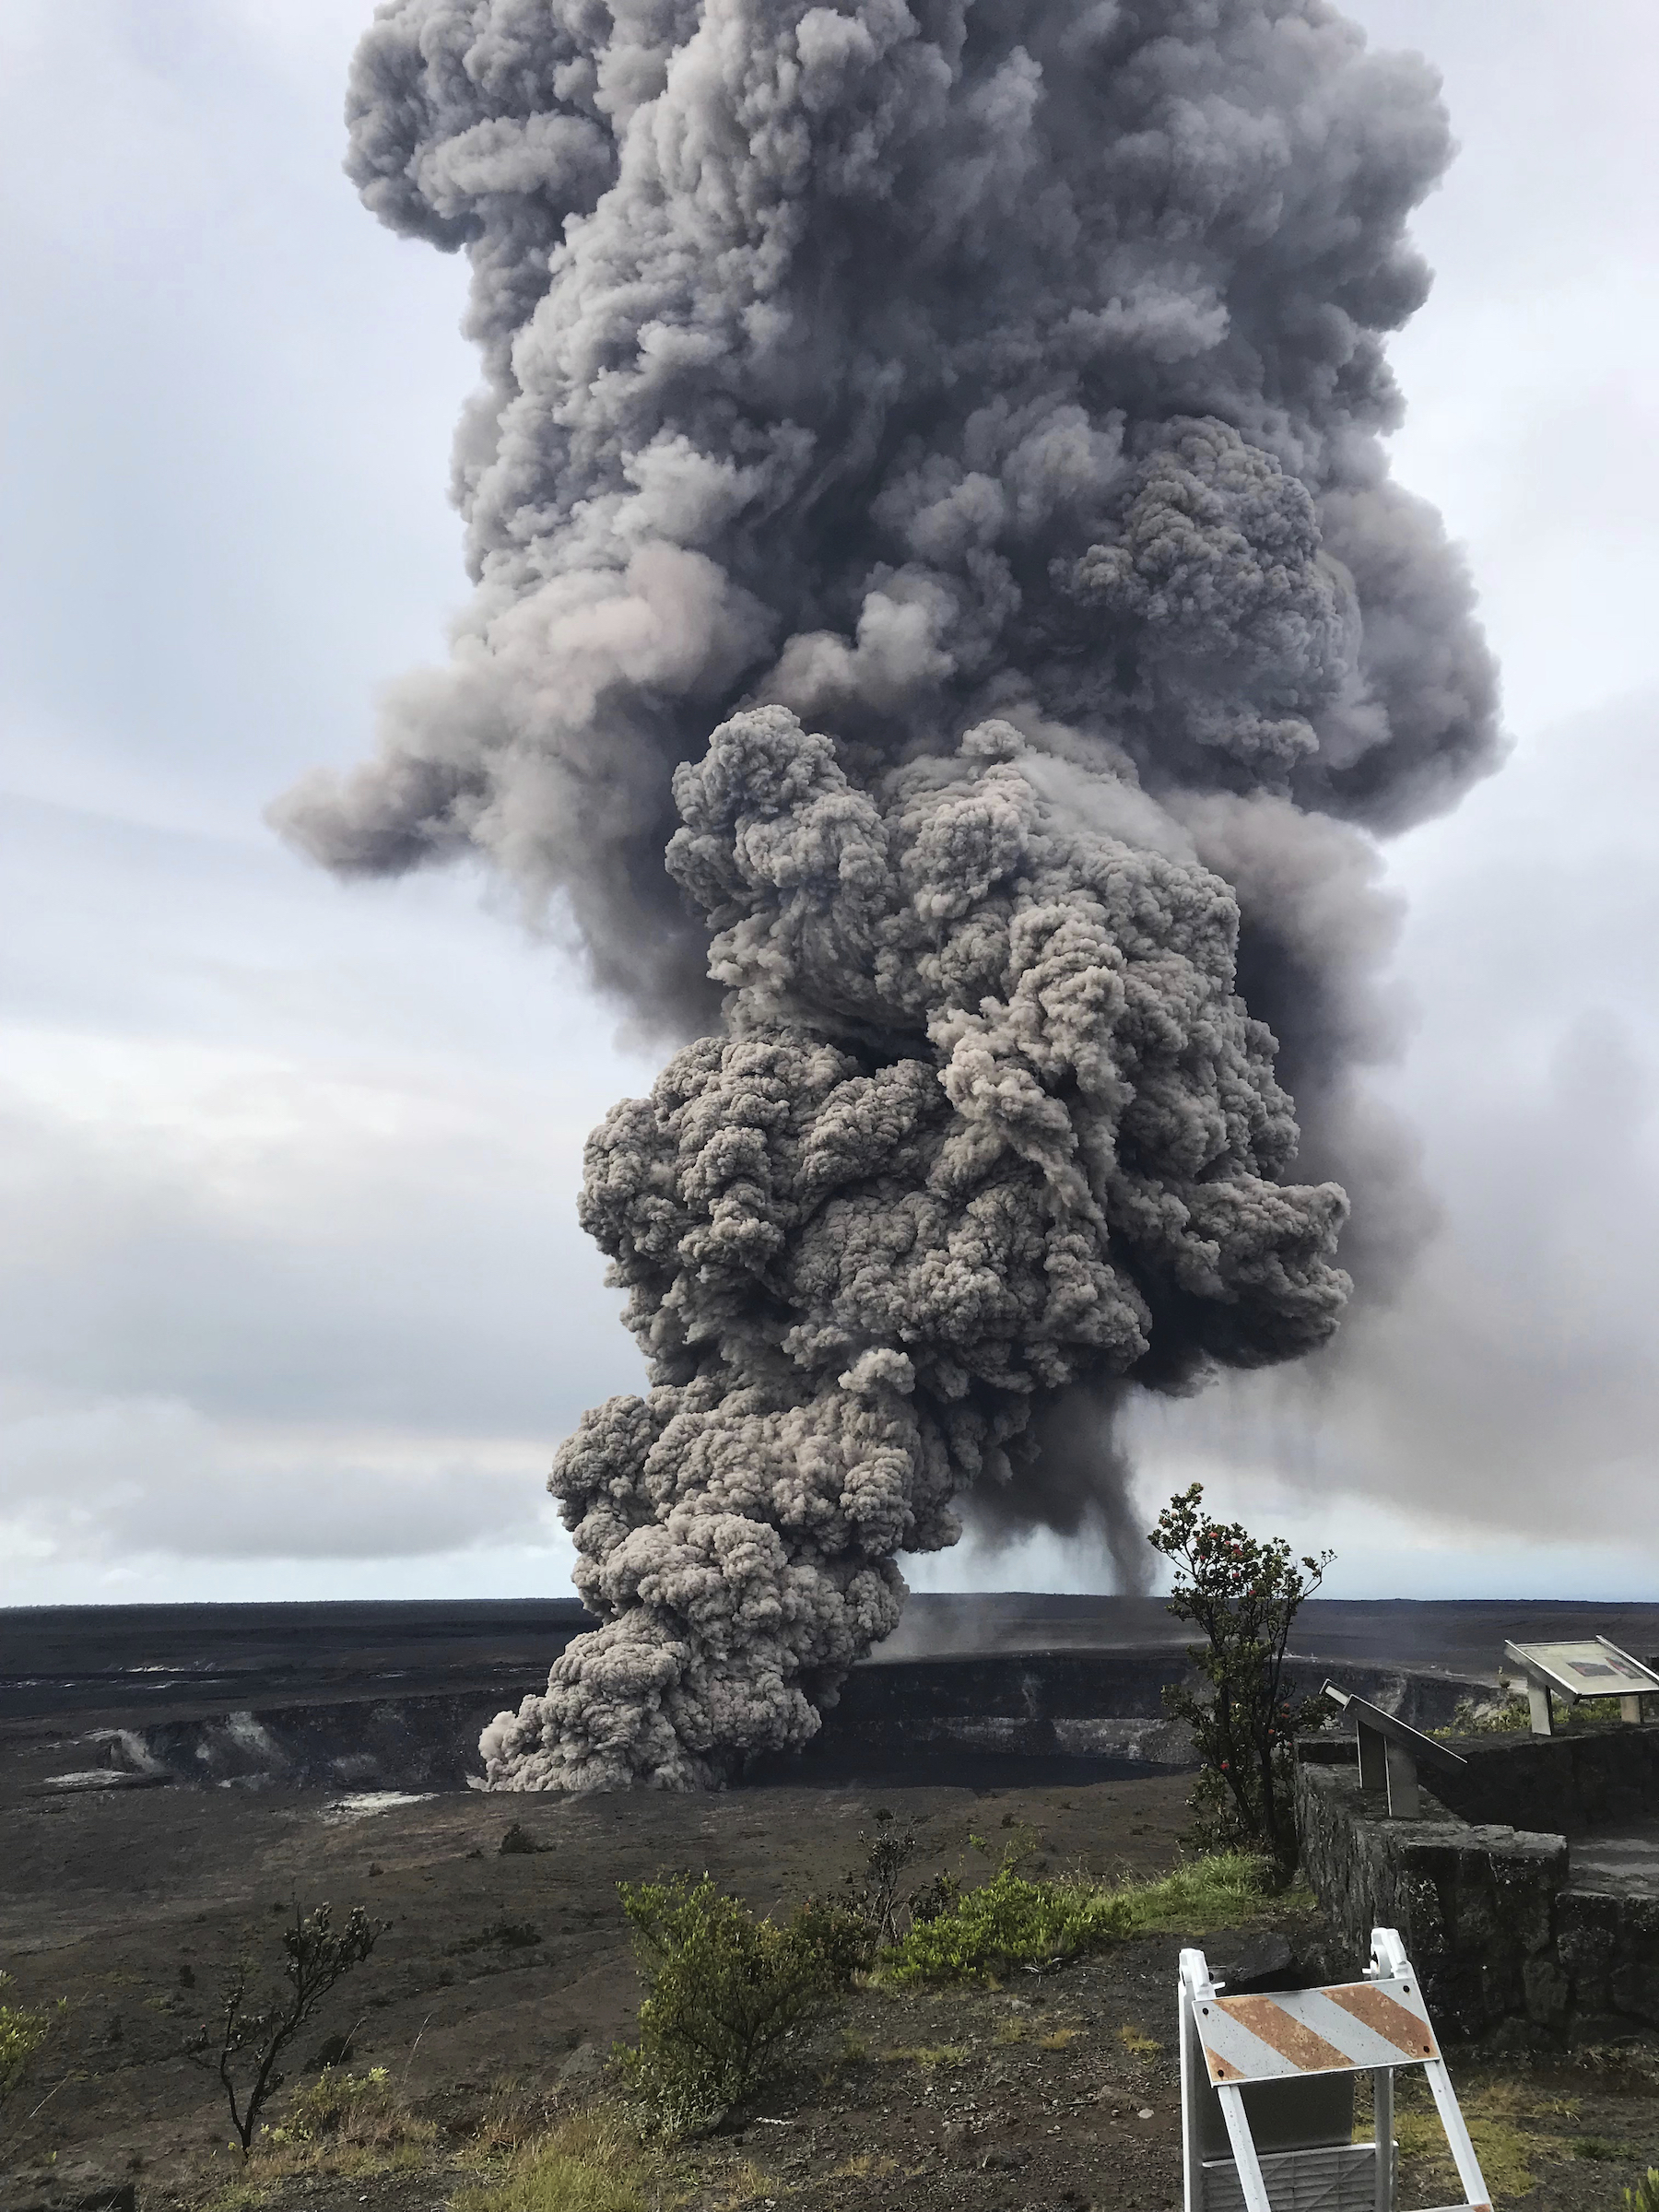 "<div class=""meta image-caption""><div class=""origin-logo origin-image ap""><span>AP</span></div><span class=""caption-text"">In this Wednesday, May 9, 2018, photo, an ash column rises from the crater at the summit of Kilauea volcano at Volcanoes National Park, Hawaii. (USGS/AP)</span></div>"